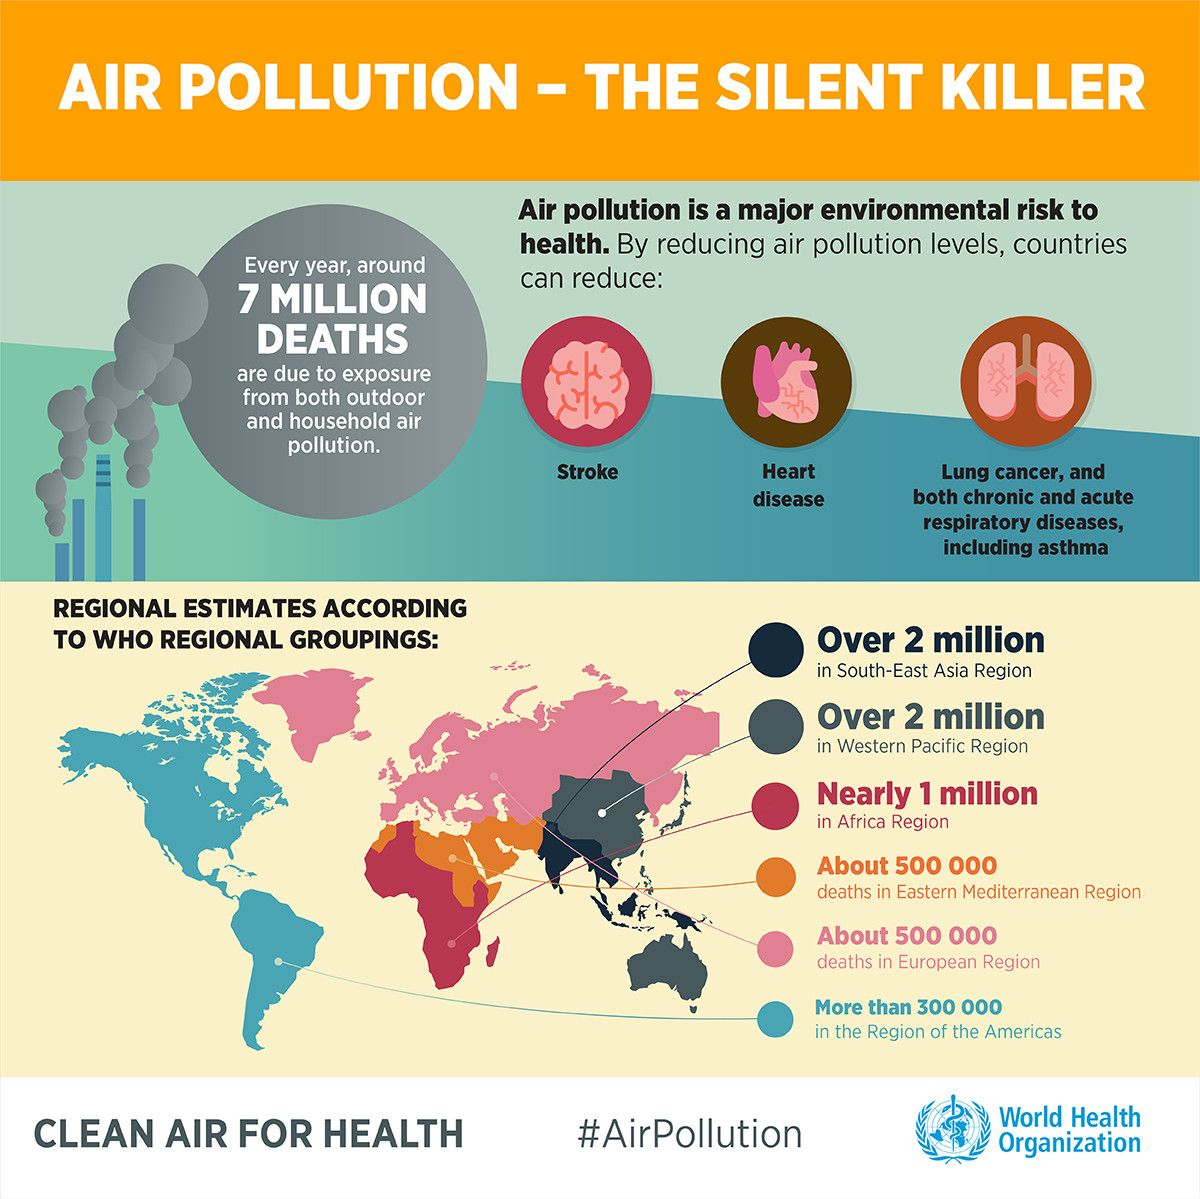 Air pollution may be affecting how happy you are wef.ch/2trJqhT #health #pollution